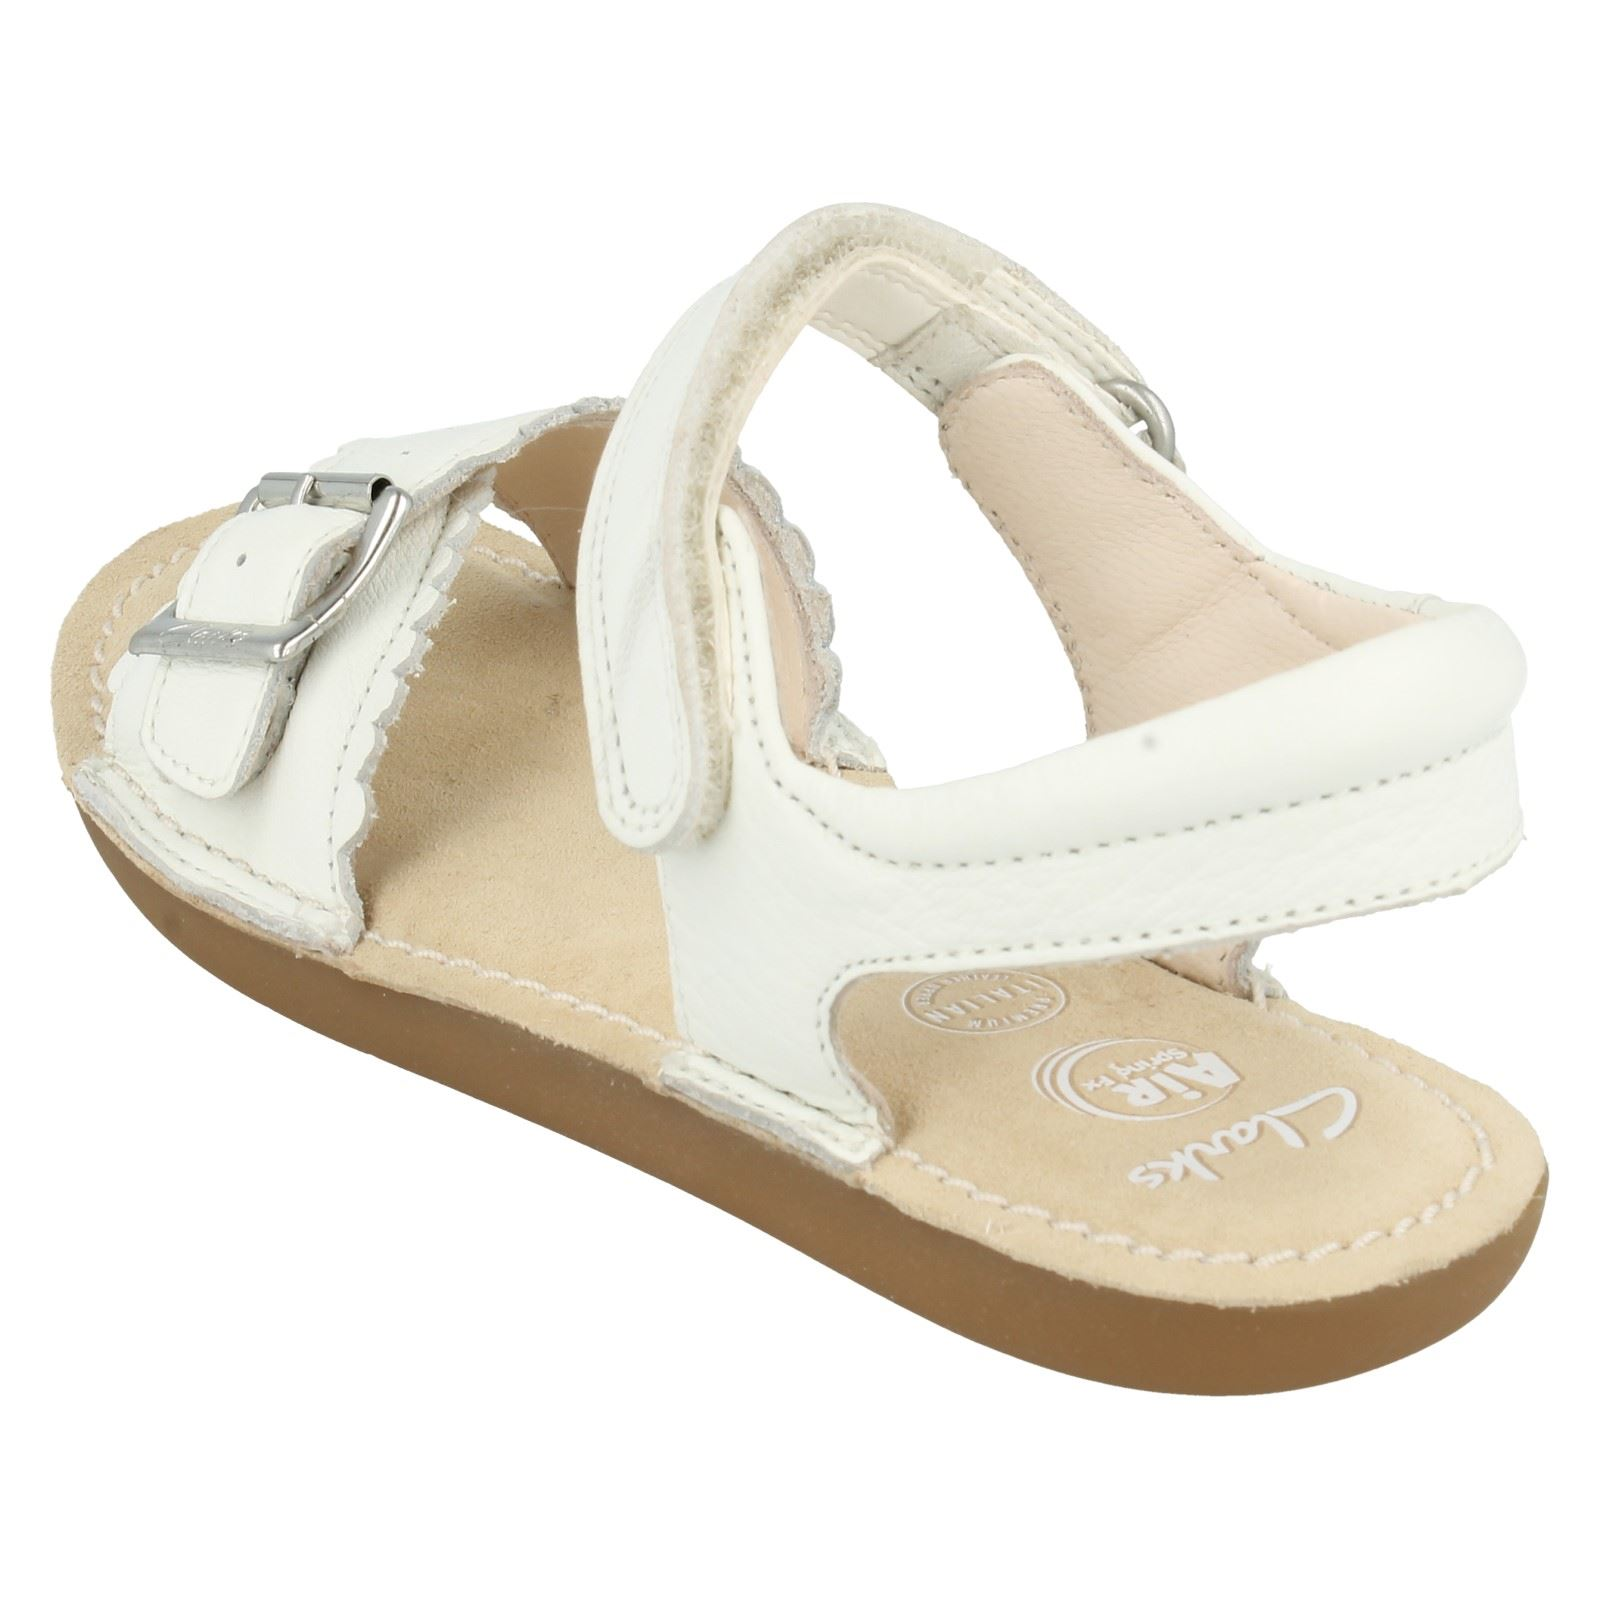 Girls Clarks Sandals Style - IvyBlossom